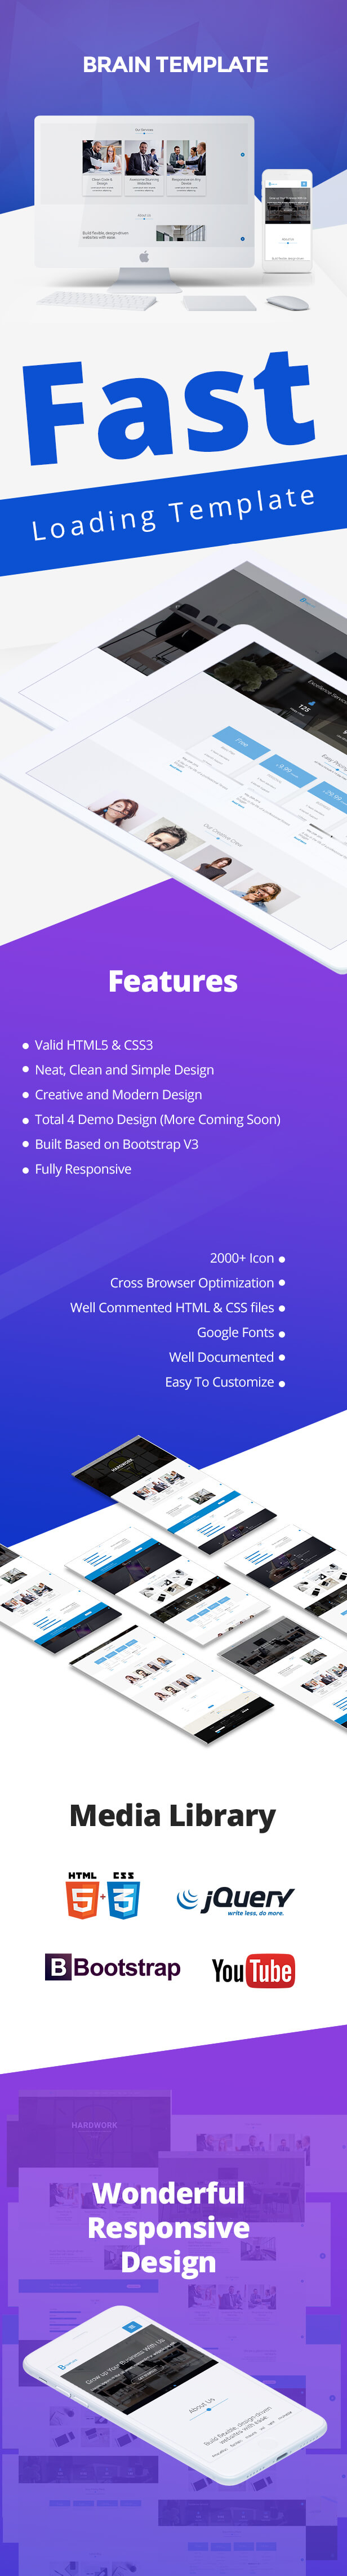 Brain Template | Responsive and Fast Corporate Html5 Template